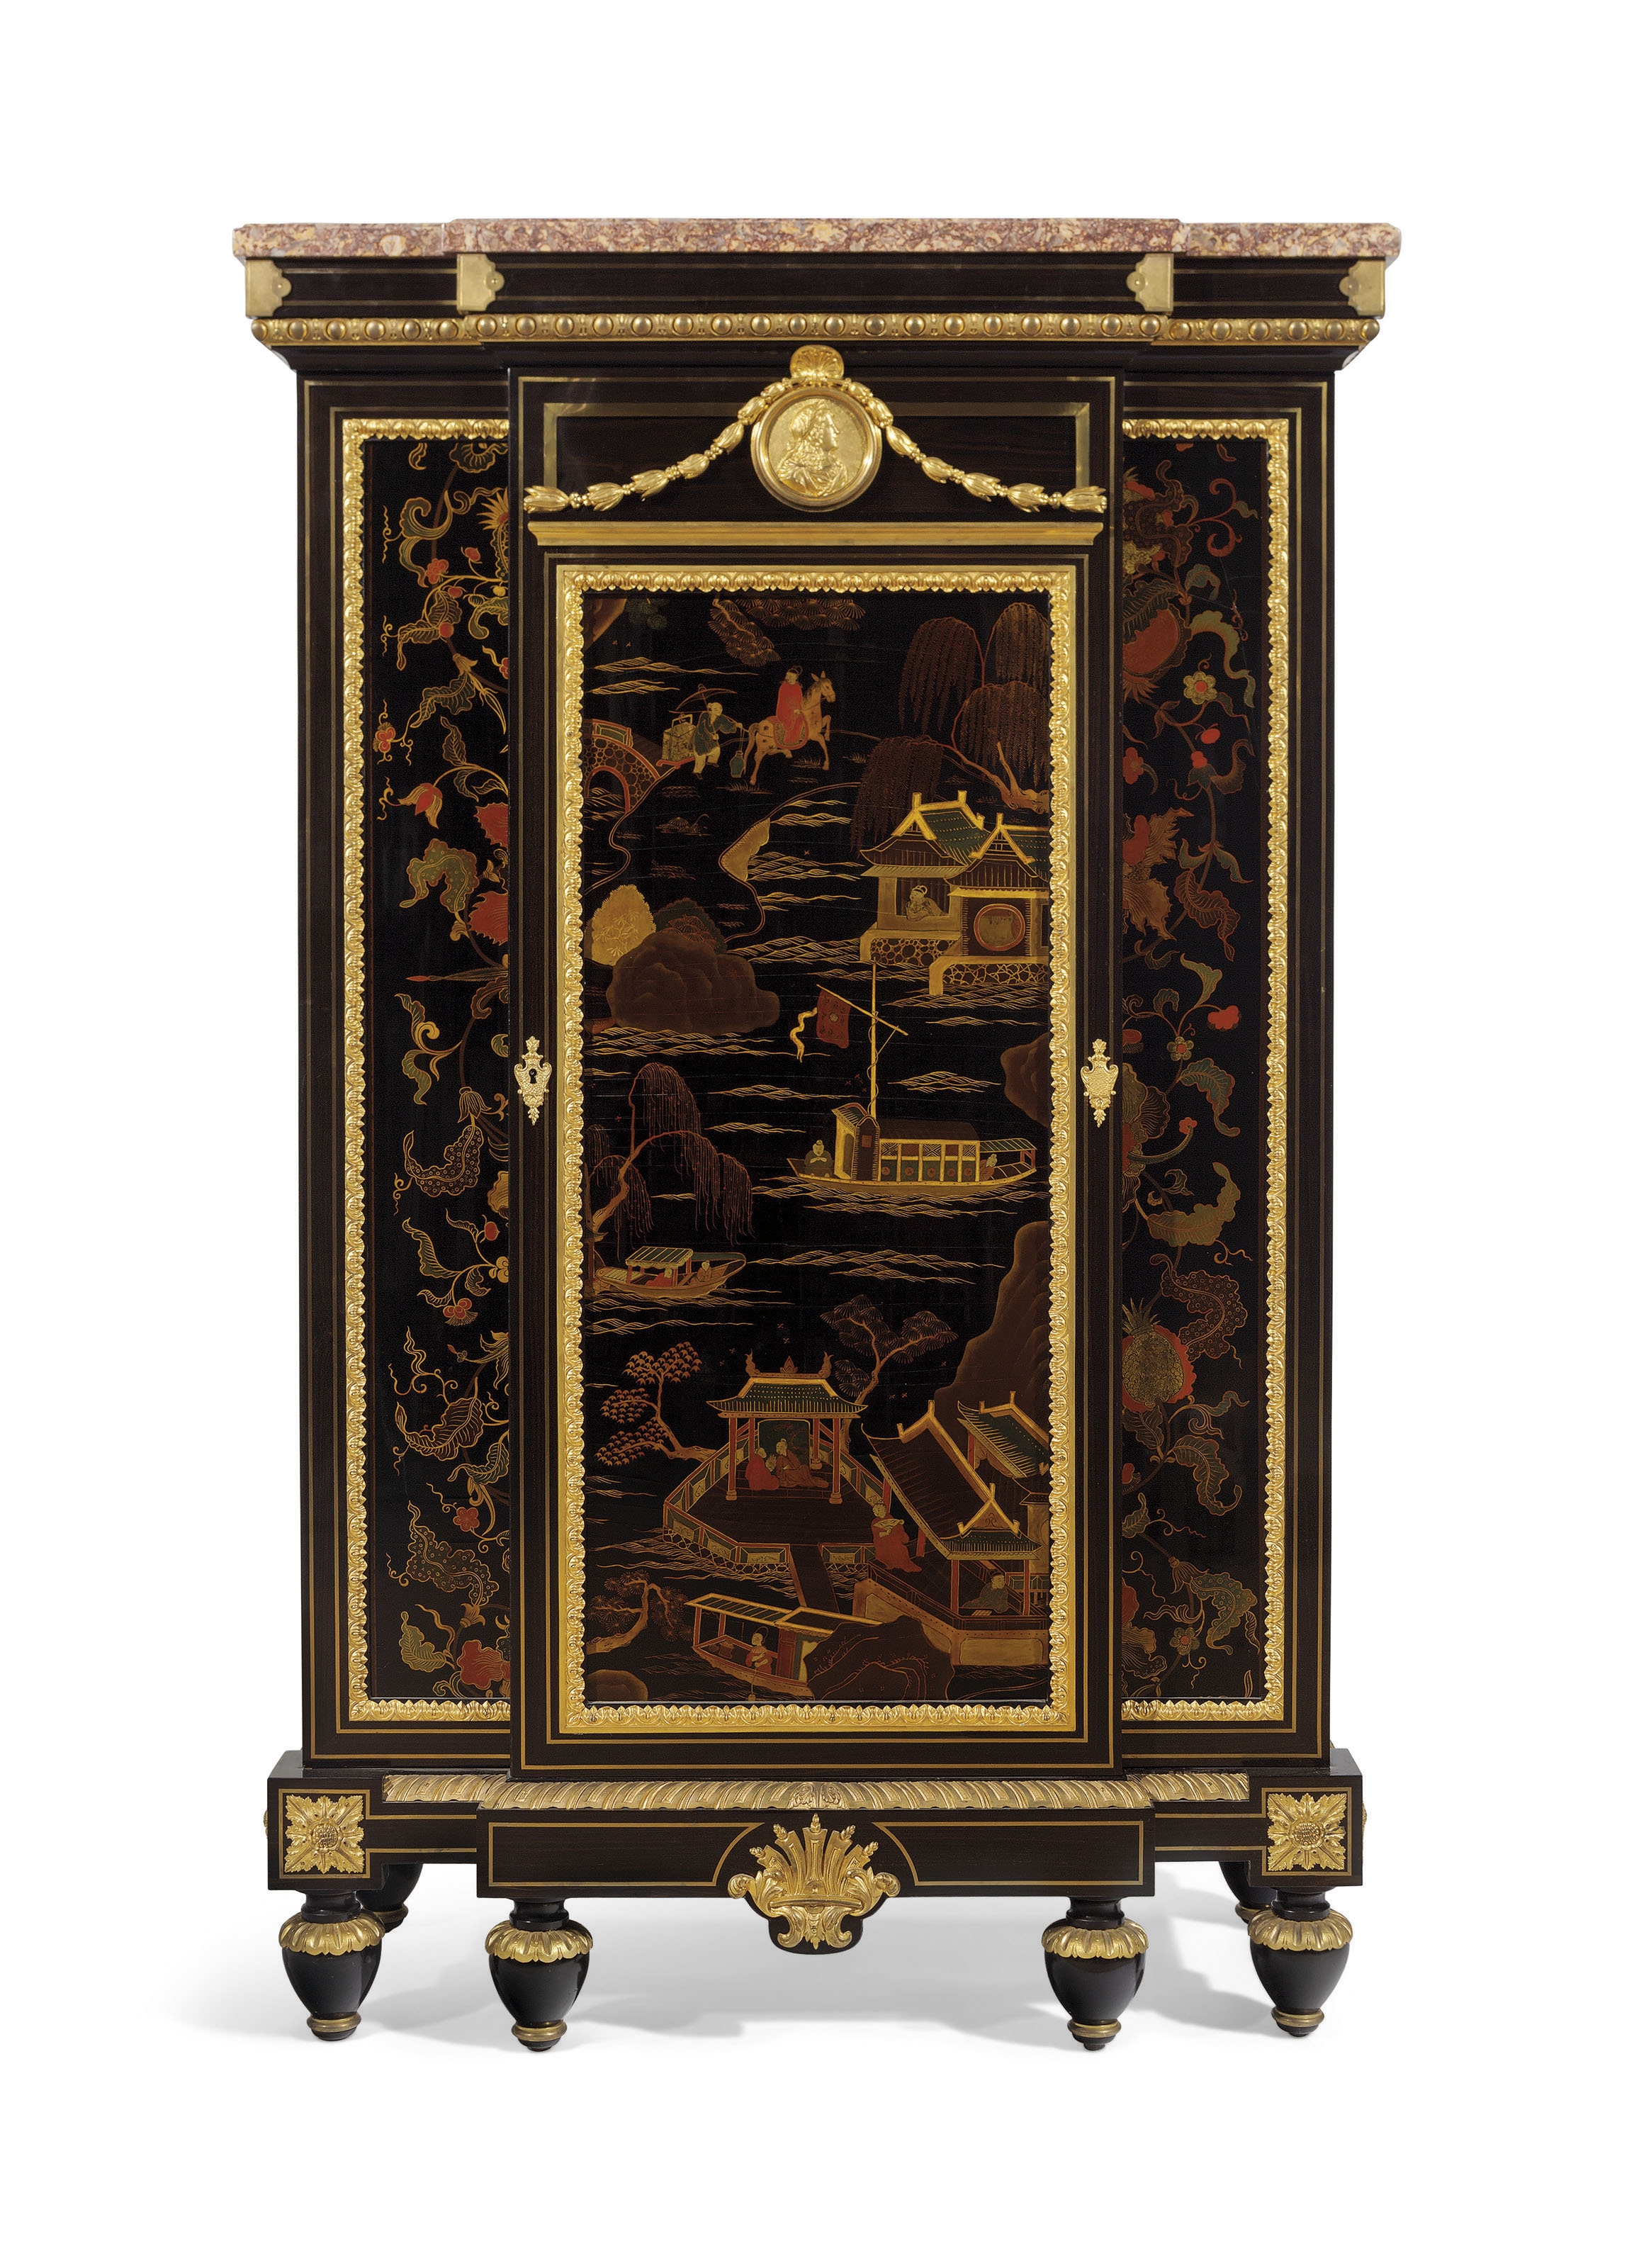 A FRENCH ORMOLU-MOUNTED AND BRASS-INLAID EBONY, EBONIZED, AND GILT-DECORATED JAPANESE LACQUER SIDE CABINET